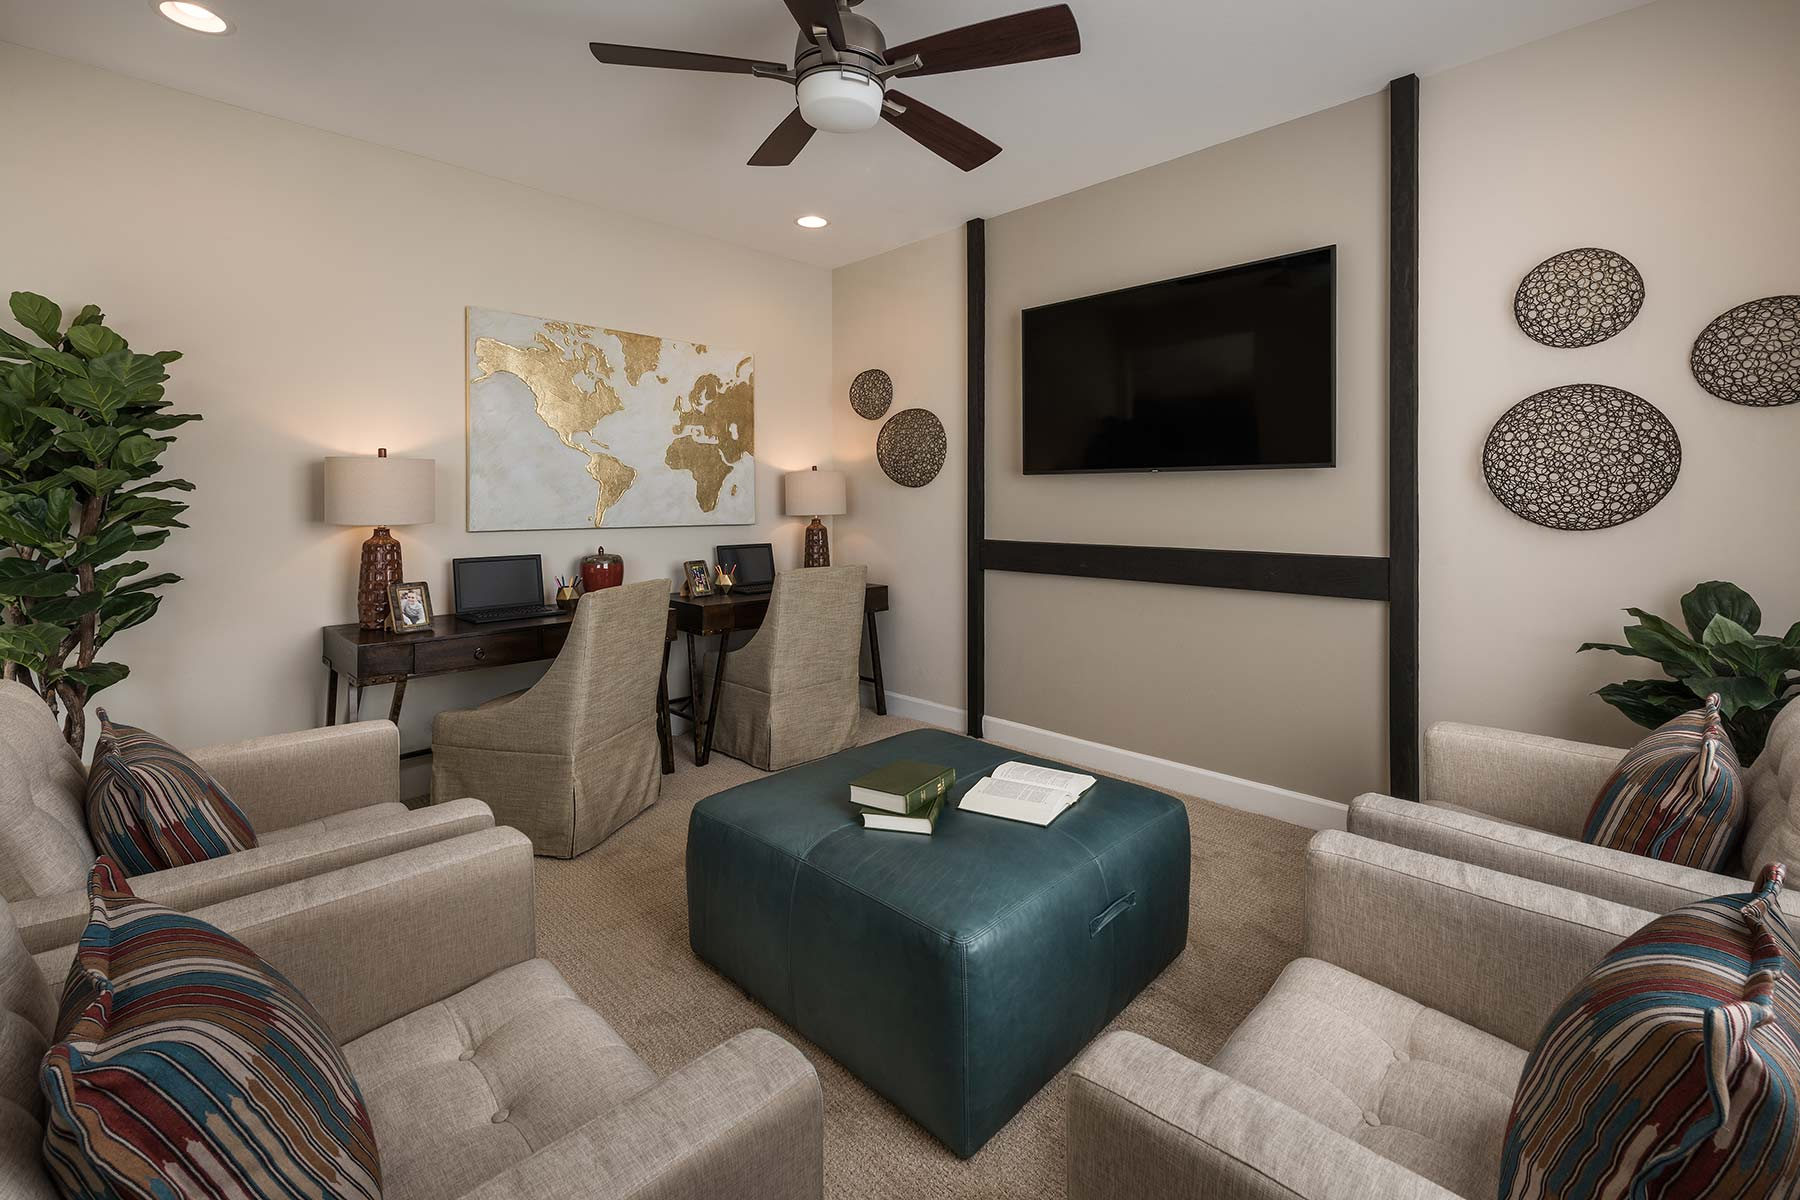 Agave Plan Media Room at Saguaro Trails in Tucson Arizona by Mattamy Homes